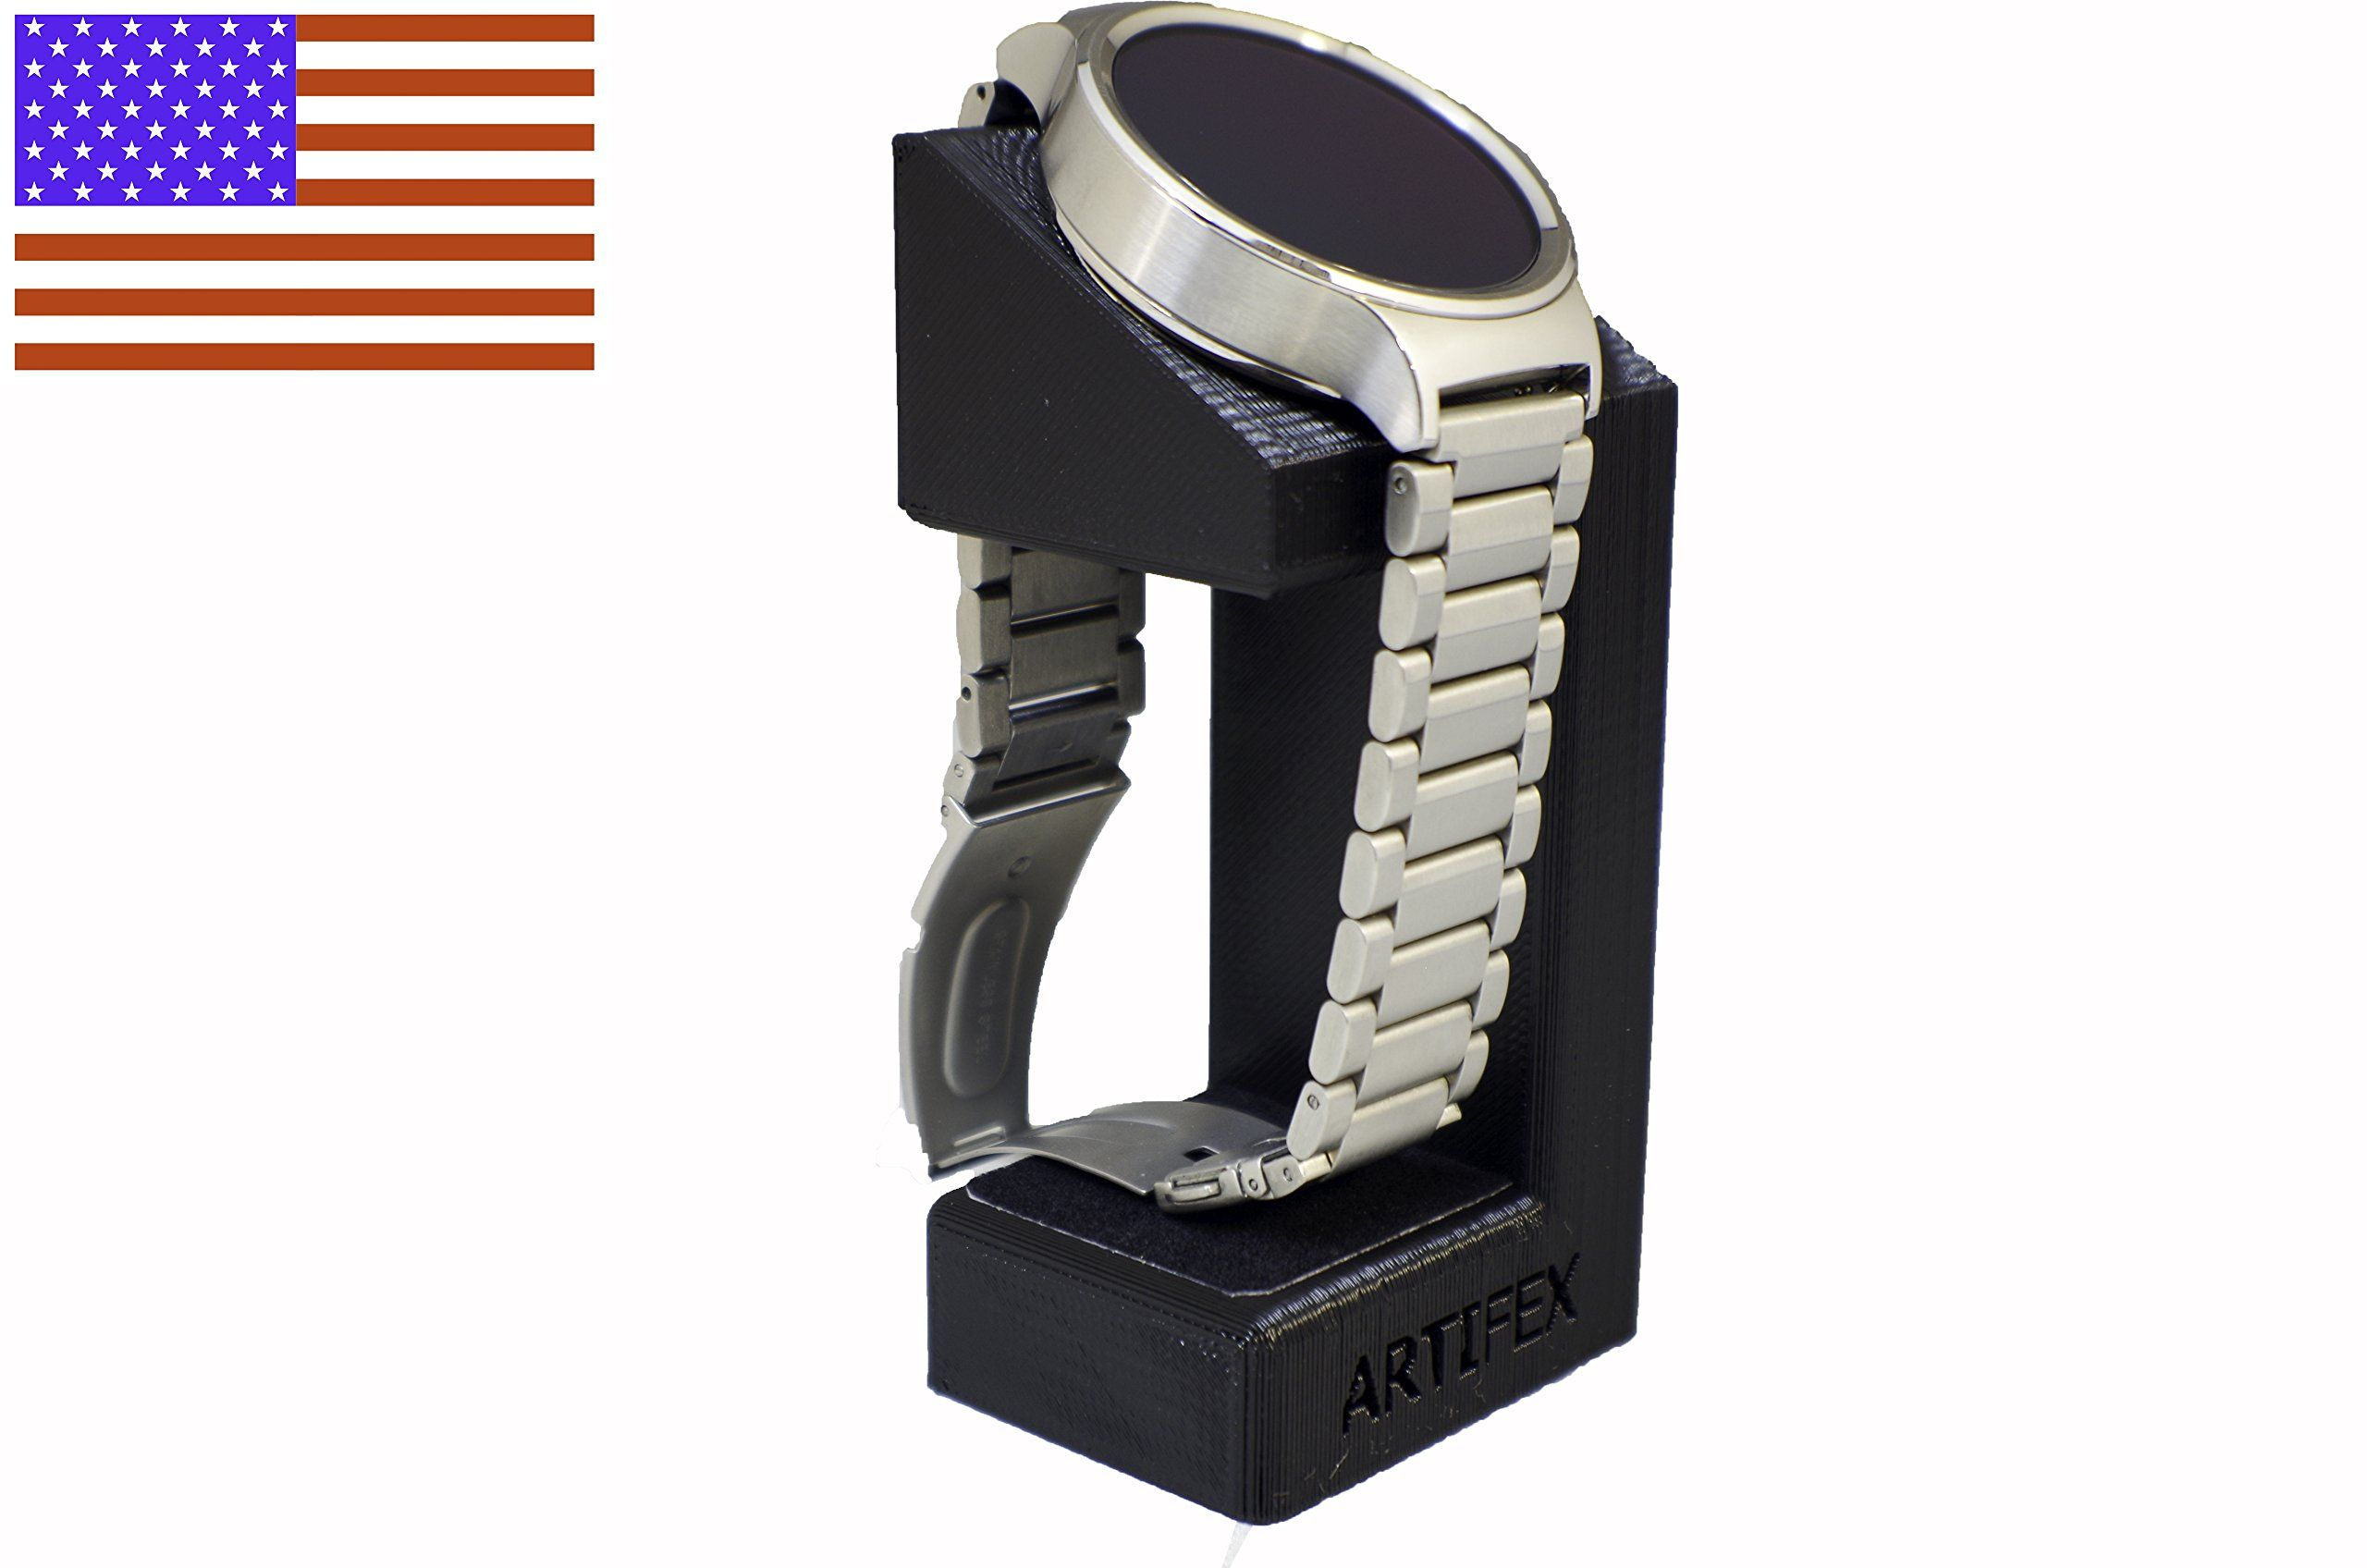 Huawei Watch Stand Artifex Charging Dock Stand For Huawei Watch New 3d Printed Technology Smartwatch Cradle Black Huawei Watch Watch Stand Charging Dock